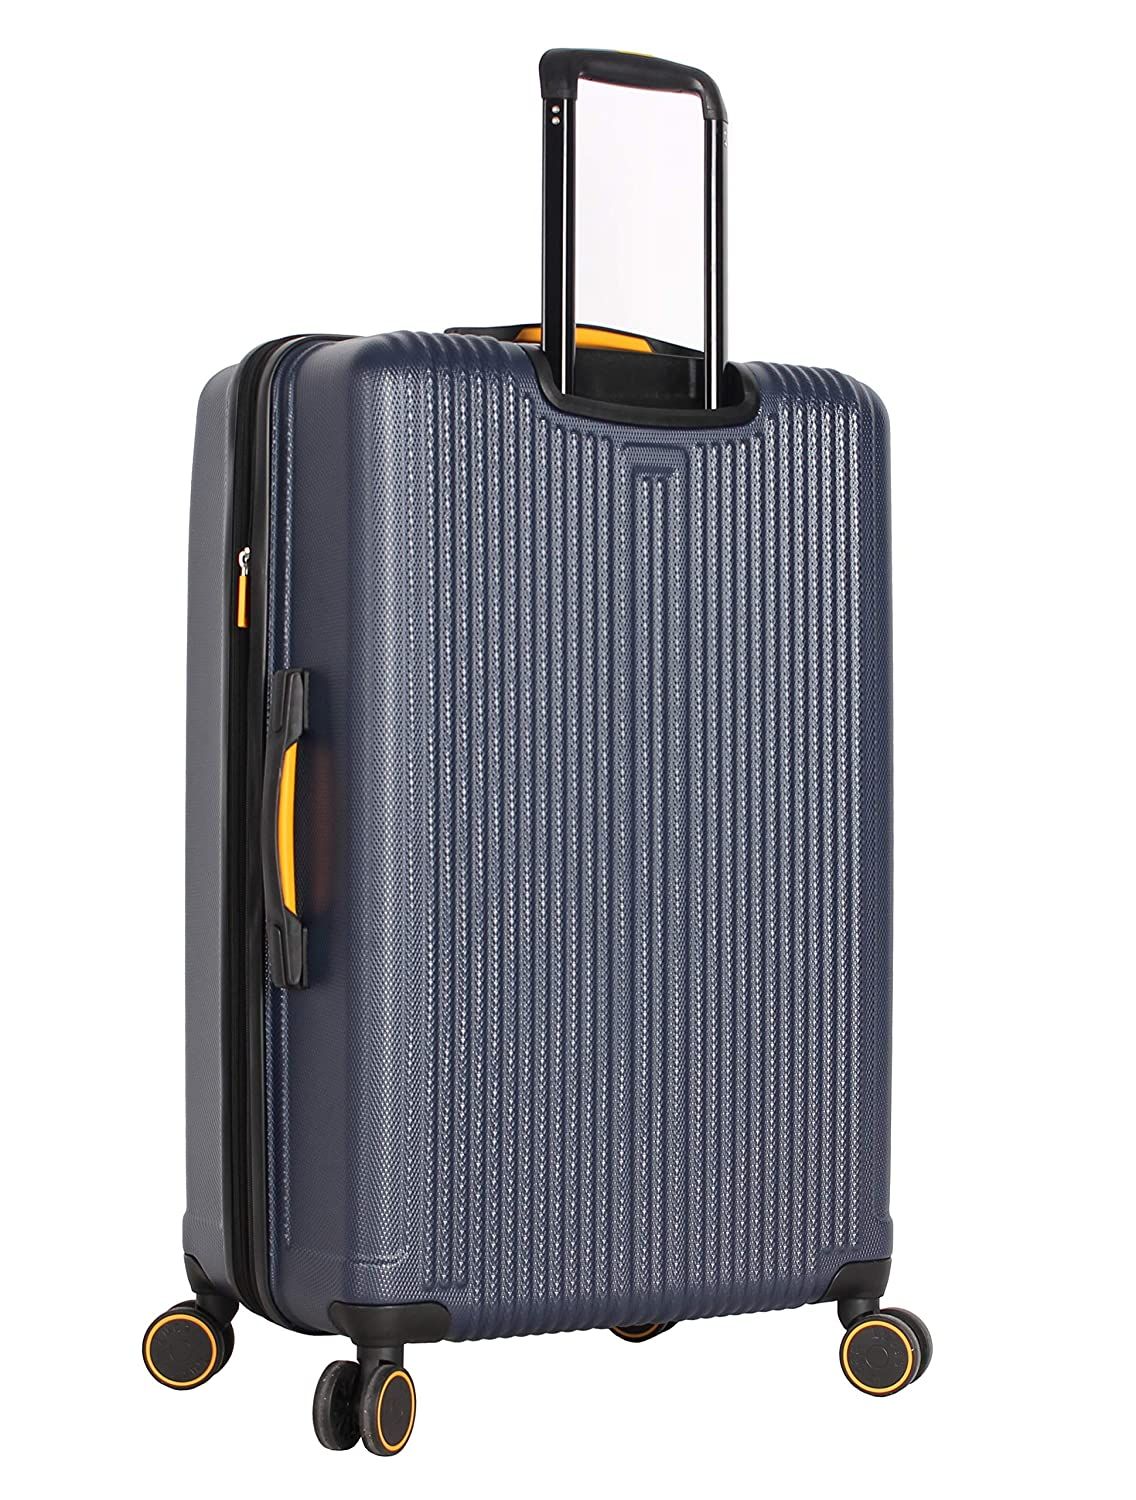 One Size, Tread Silver 20 27 31 Lucas Luggage 3 Piece Rolling Suitcase Set Hard Case With Spinner Wheels